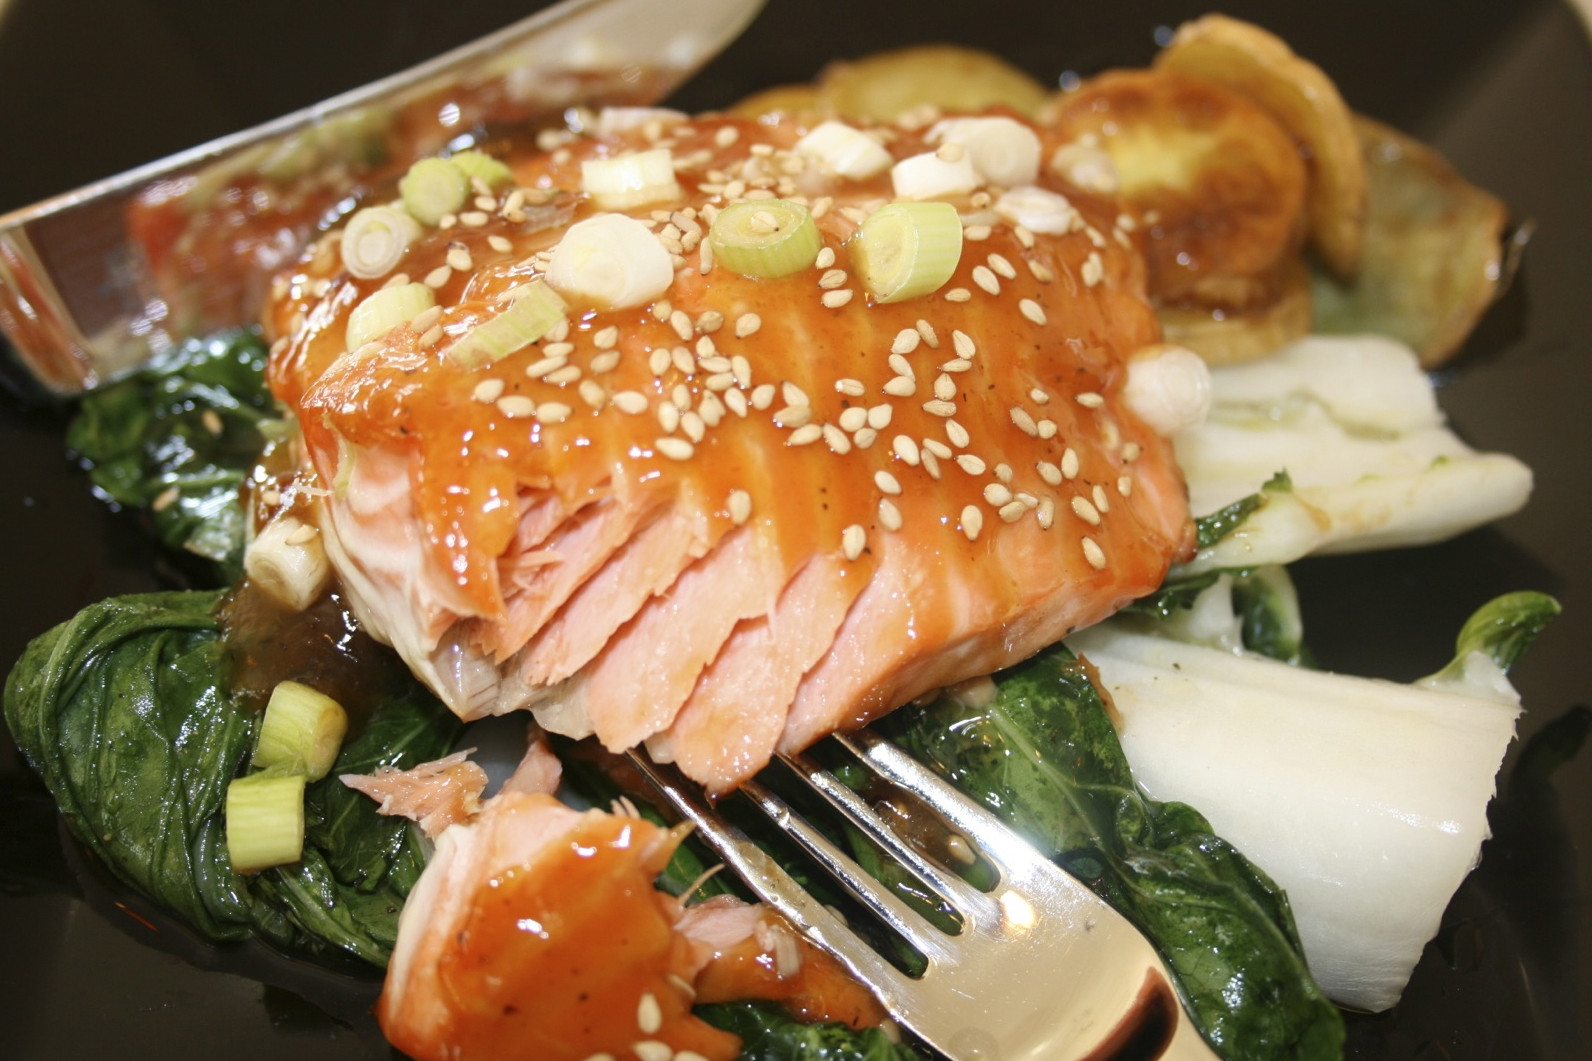 Eat To Beat Asian Salmon Fillets With Bok Choy And Maple Glazed Sweet Potato Medallions